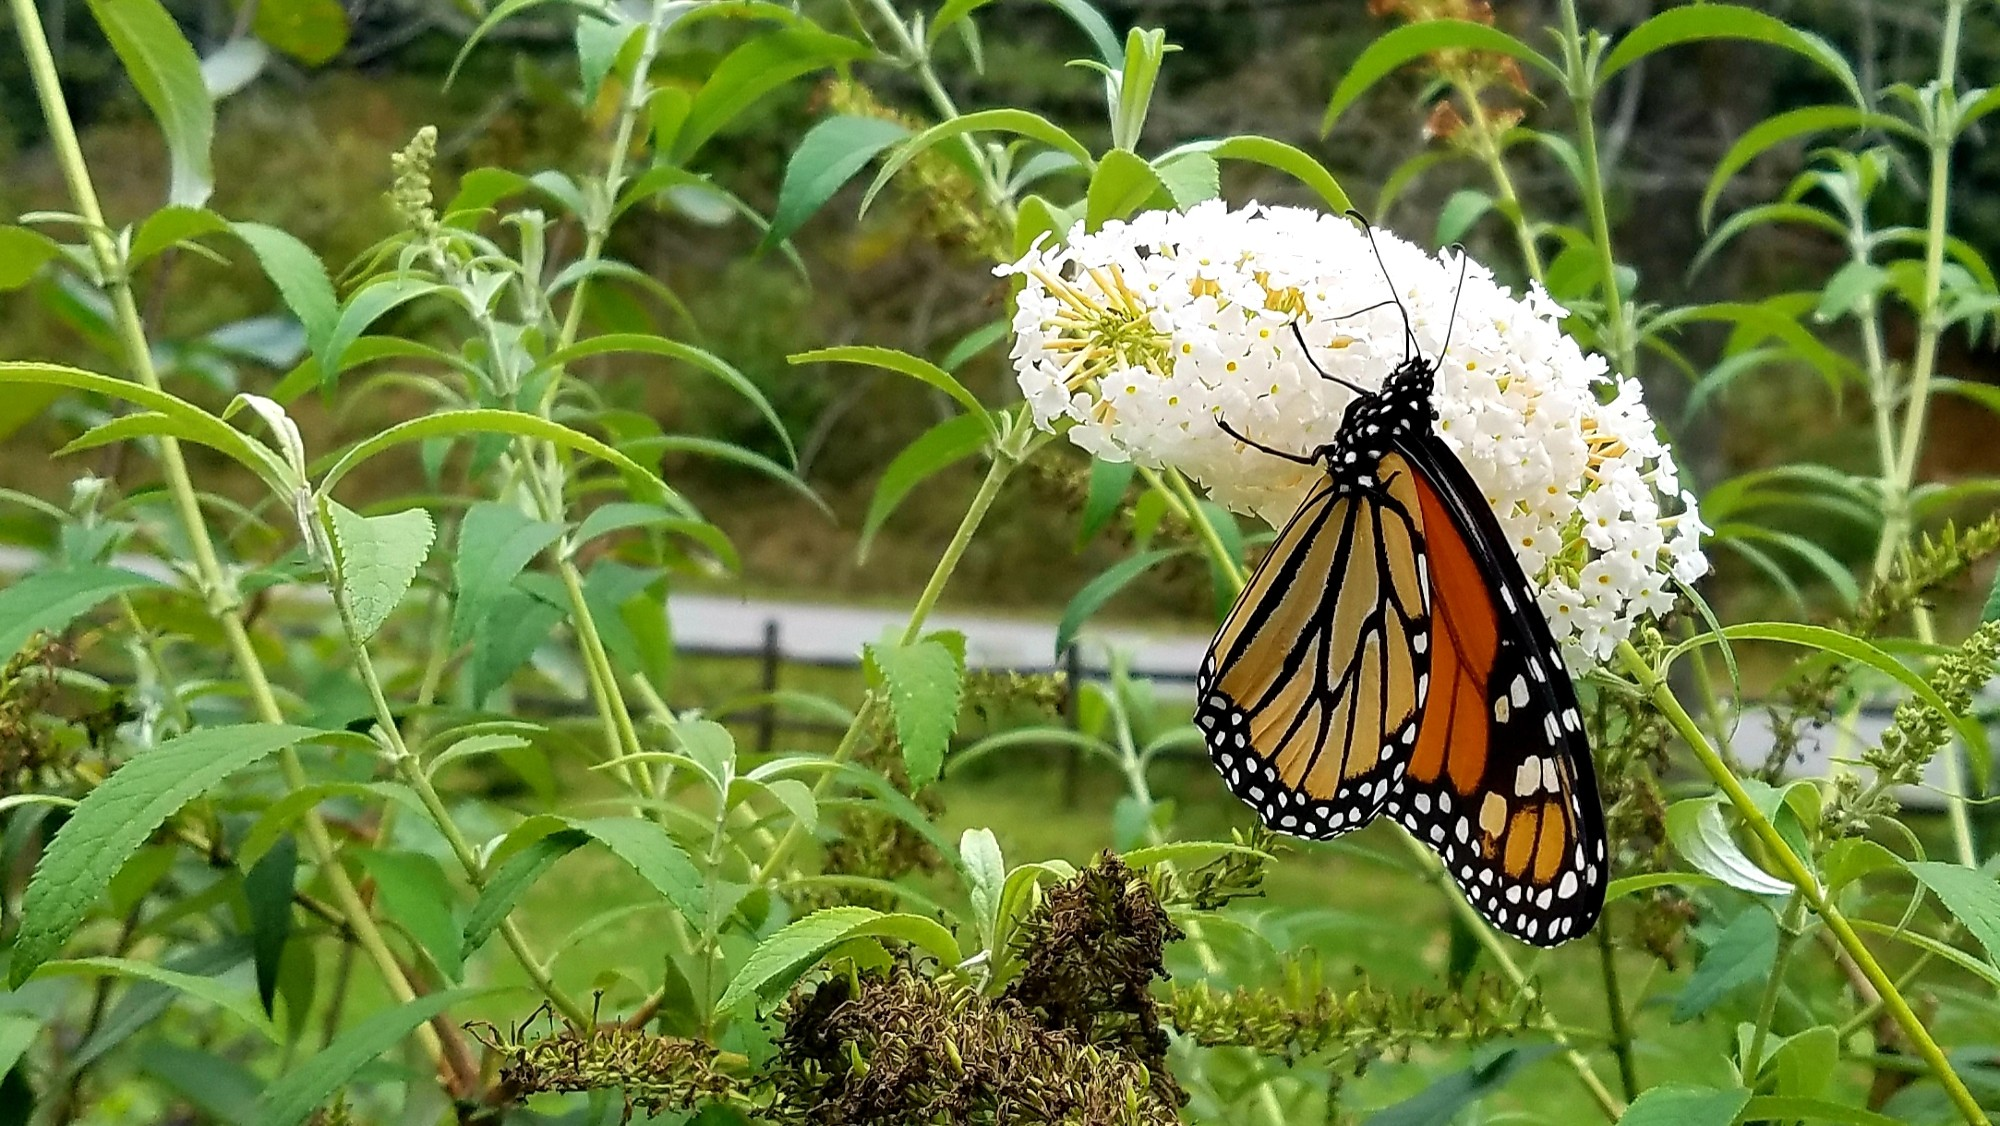 Closeup of a monarch butterfly on a white butterfly bush bloom